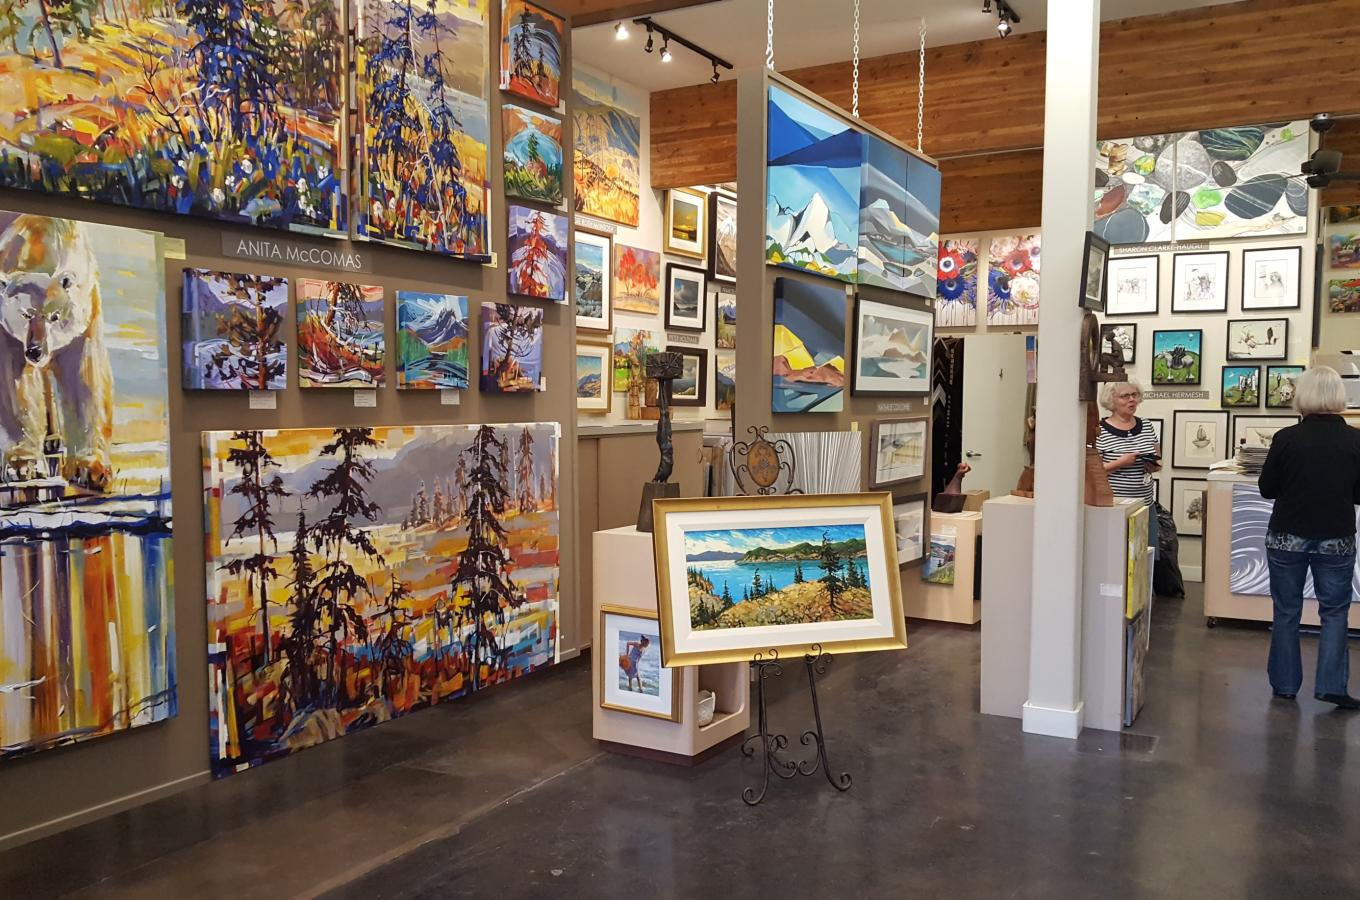 The Lloyd Gallery Image 2